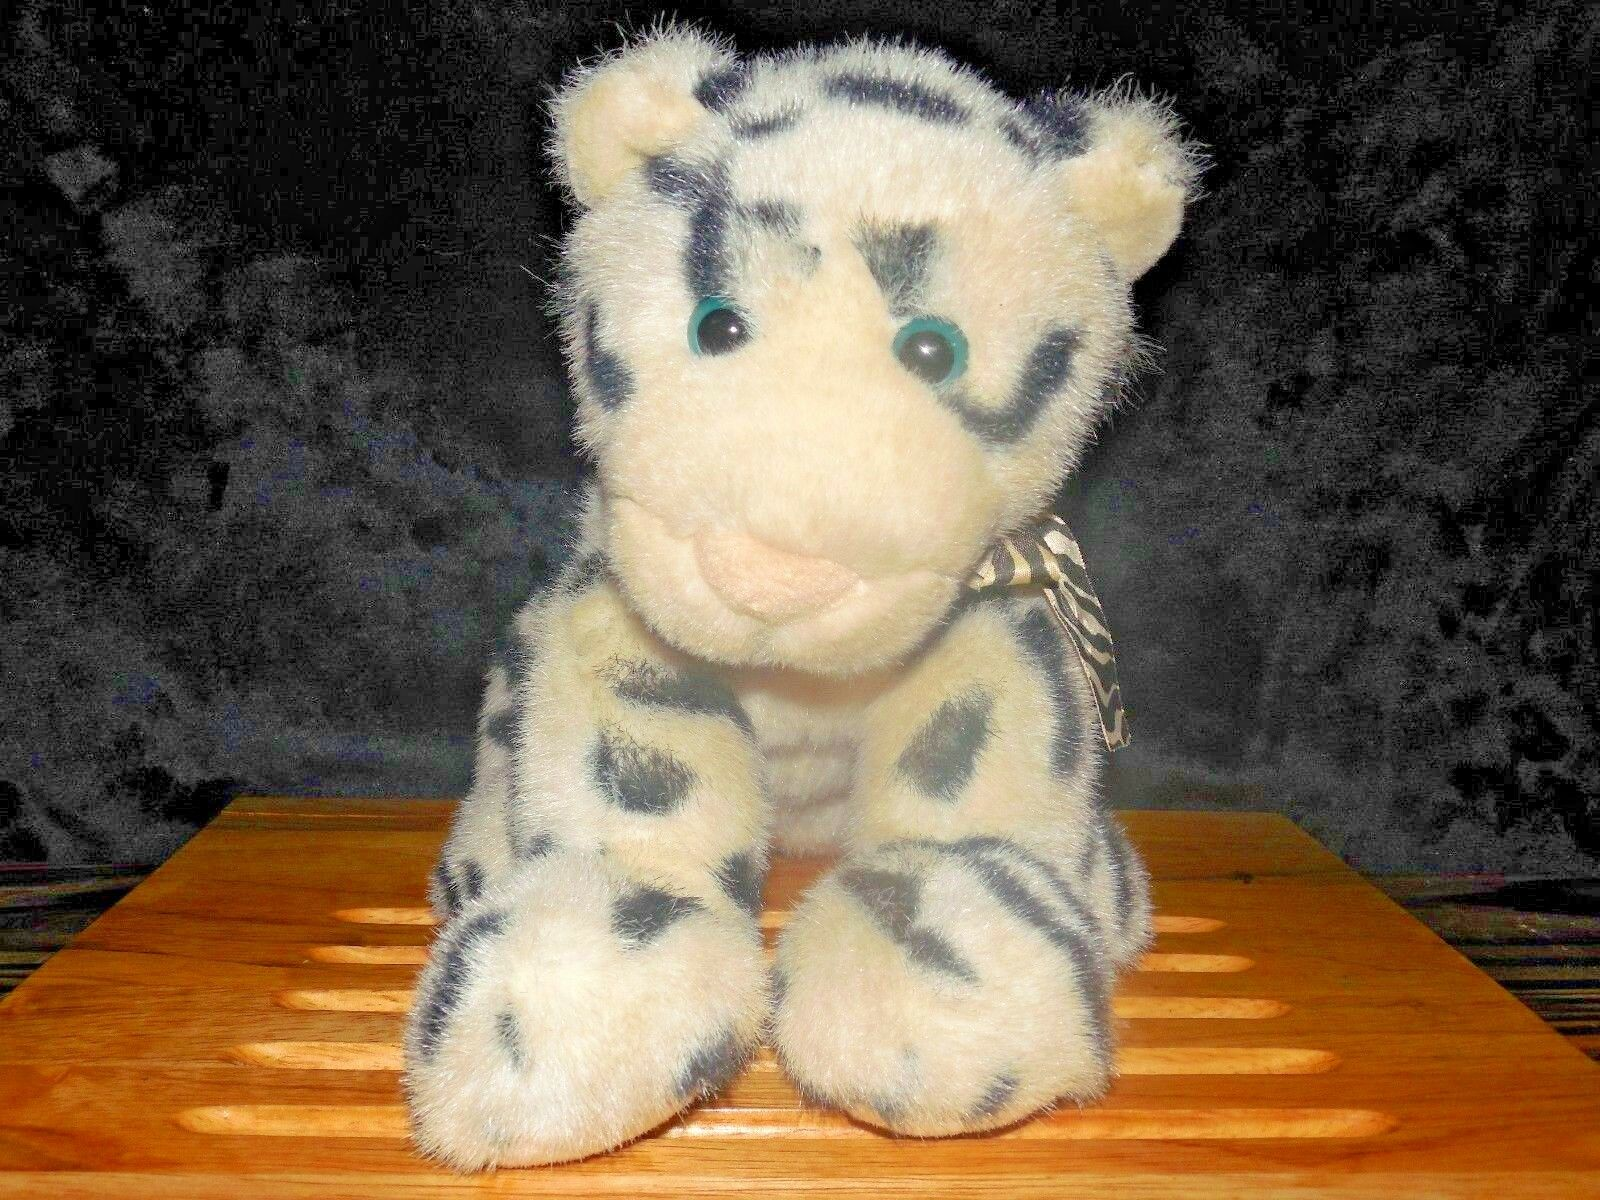 Gund Leika Plush Weiß Striped Tiger  2734 w striped Bow Vintage Stuffed 11